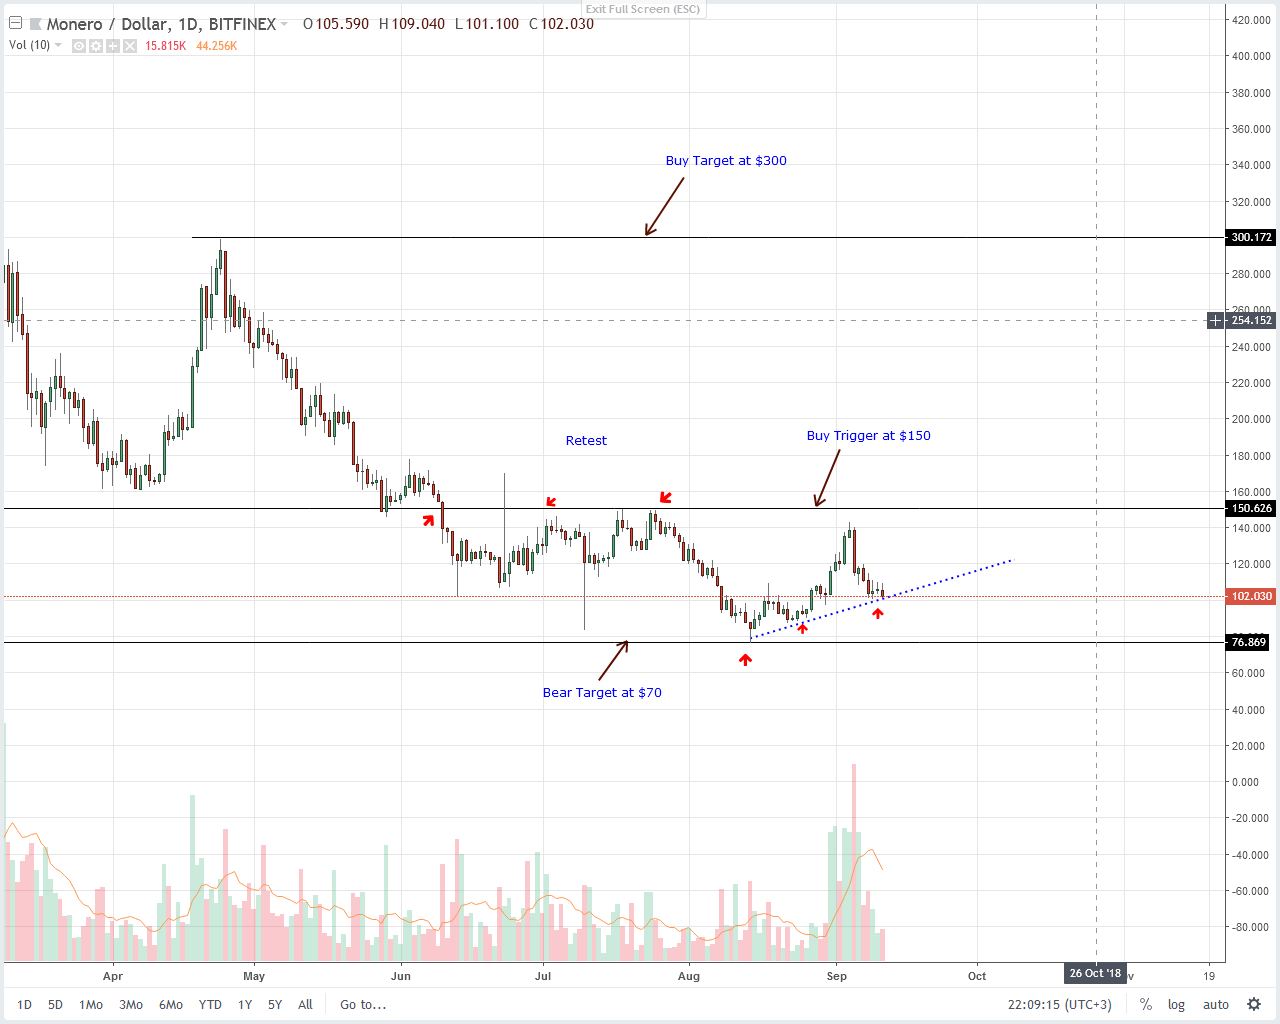 Monero (XMR) Technical Analysis